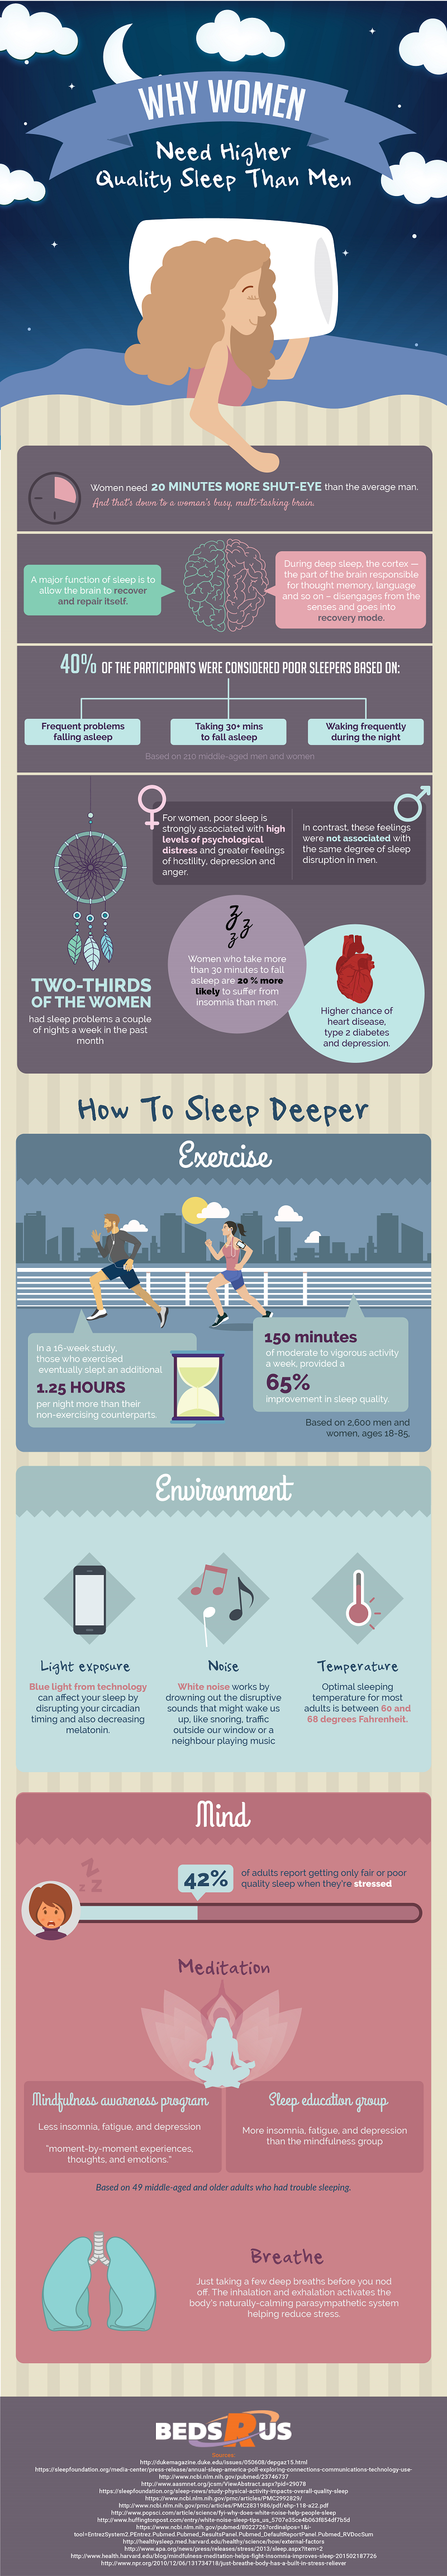 Why Women Need Higher Quality Sleep Than Men #Infographic